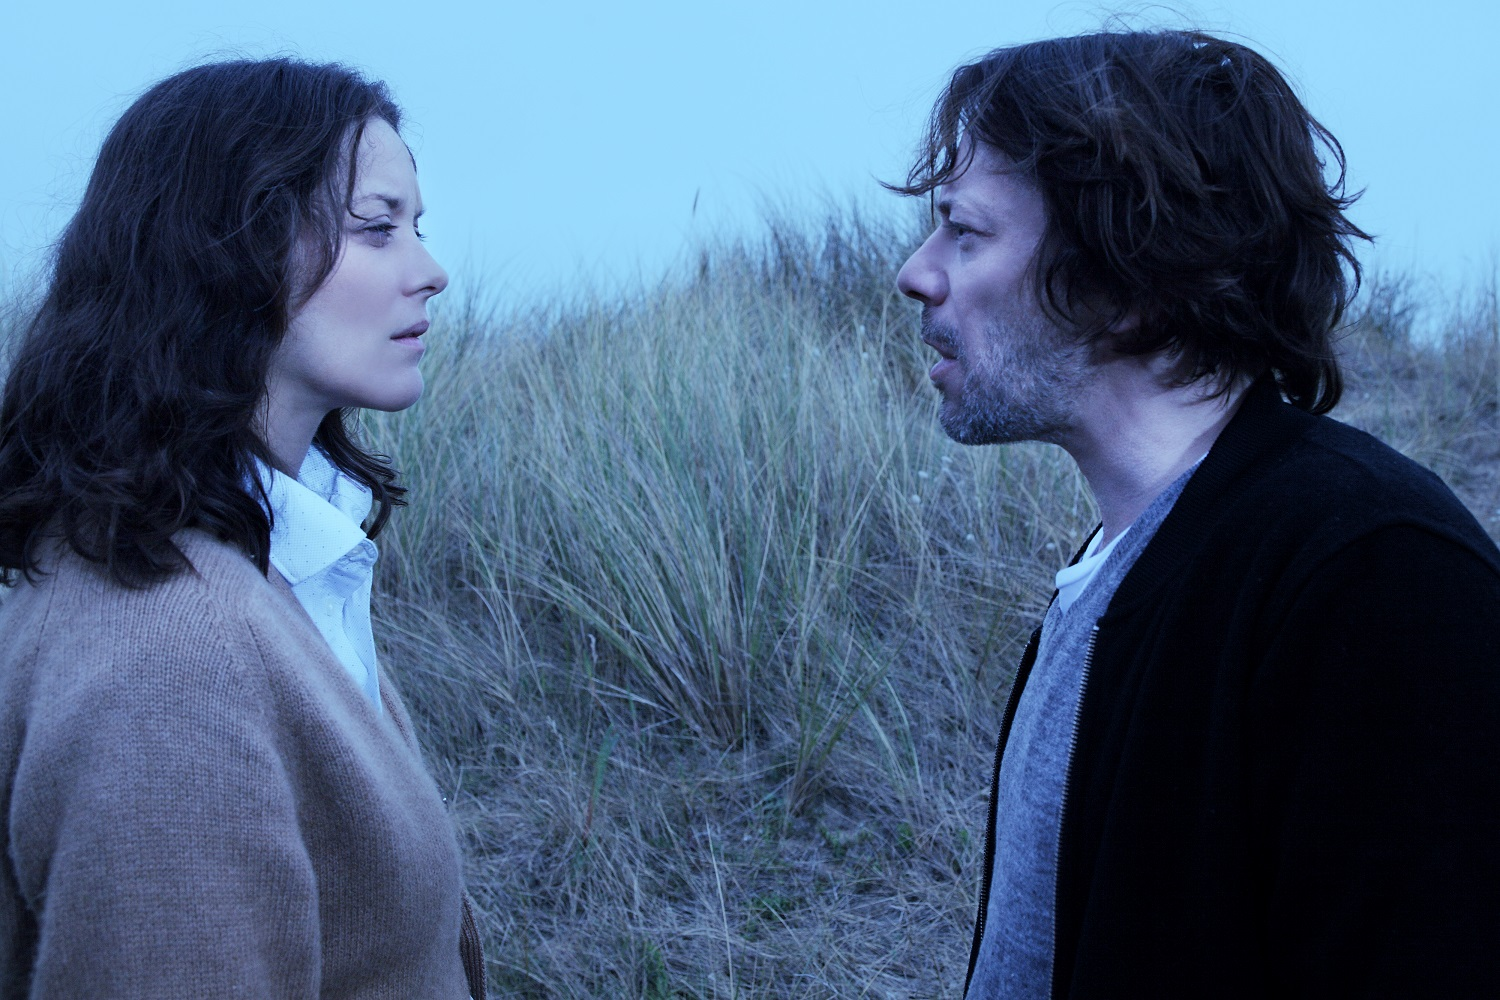 Marion Cotillard and Mathieu Almaric